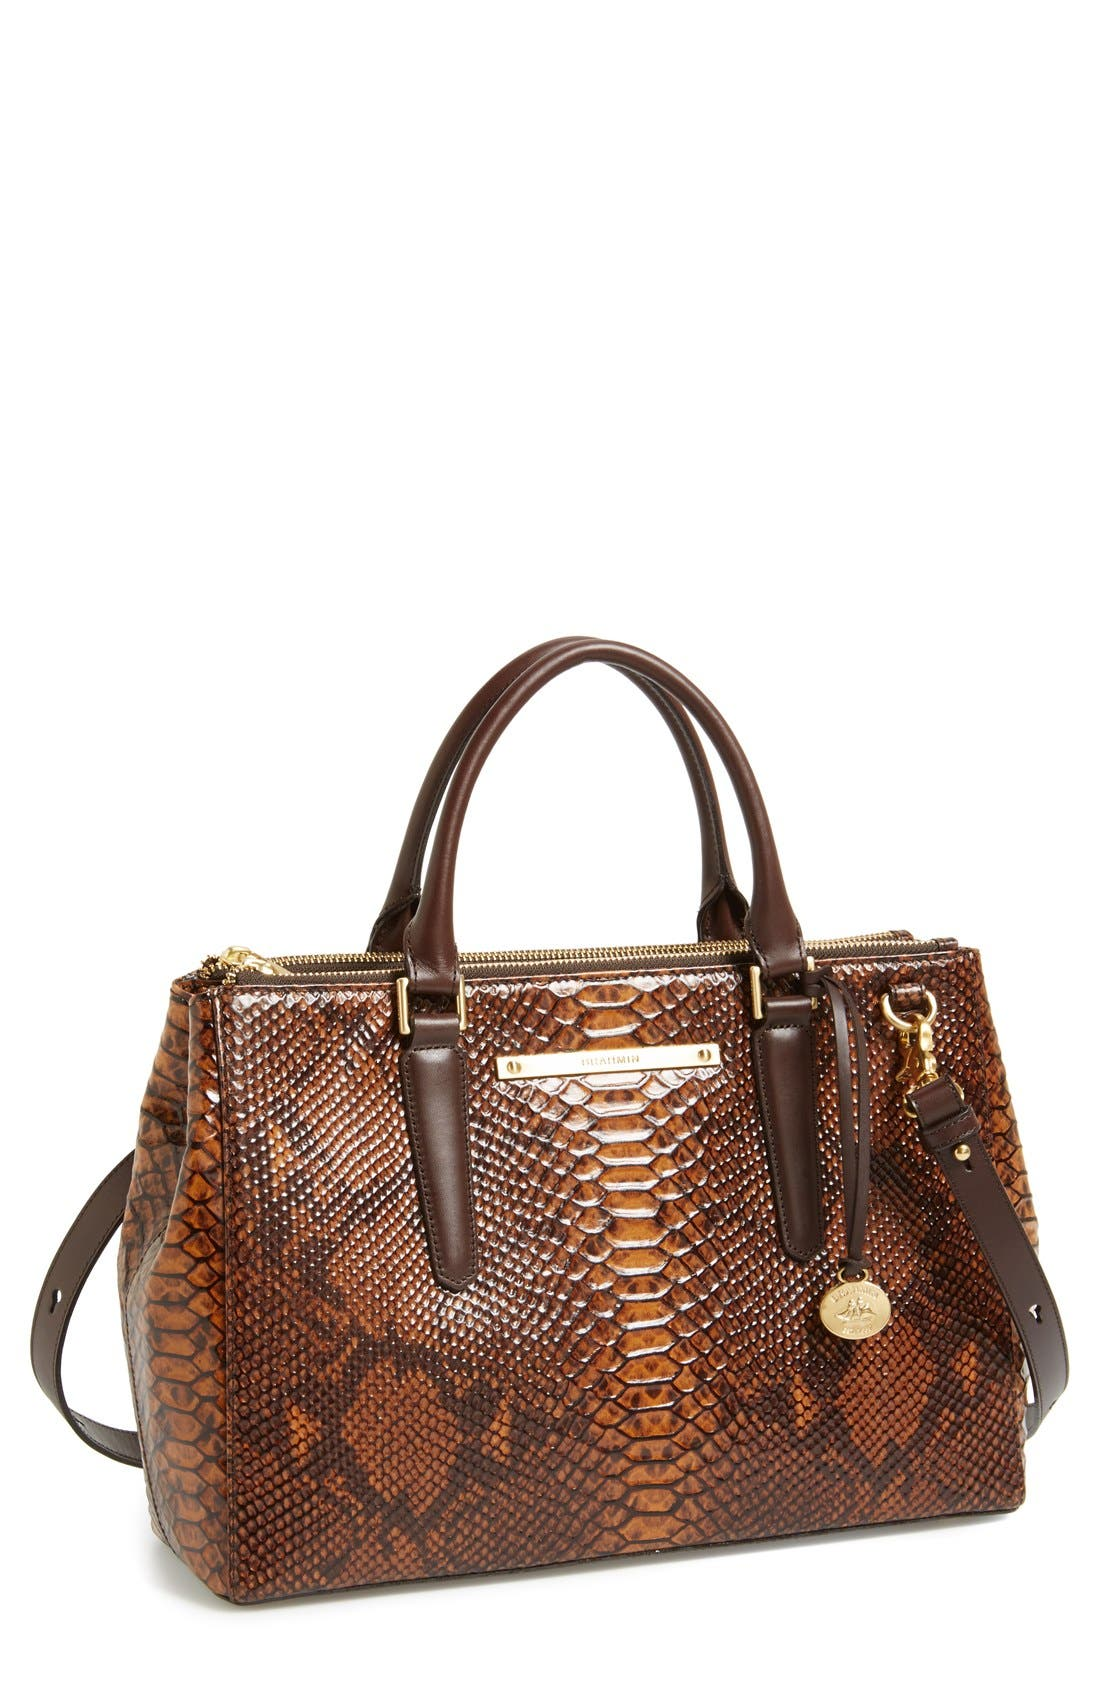 Main Image - Brahmin 'Small Lincoln' Leather Shopper